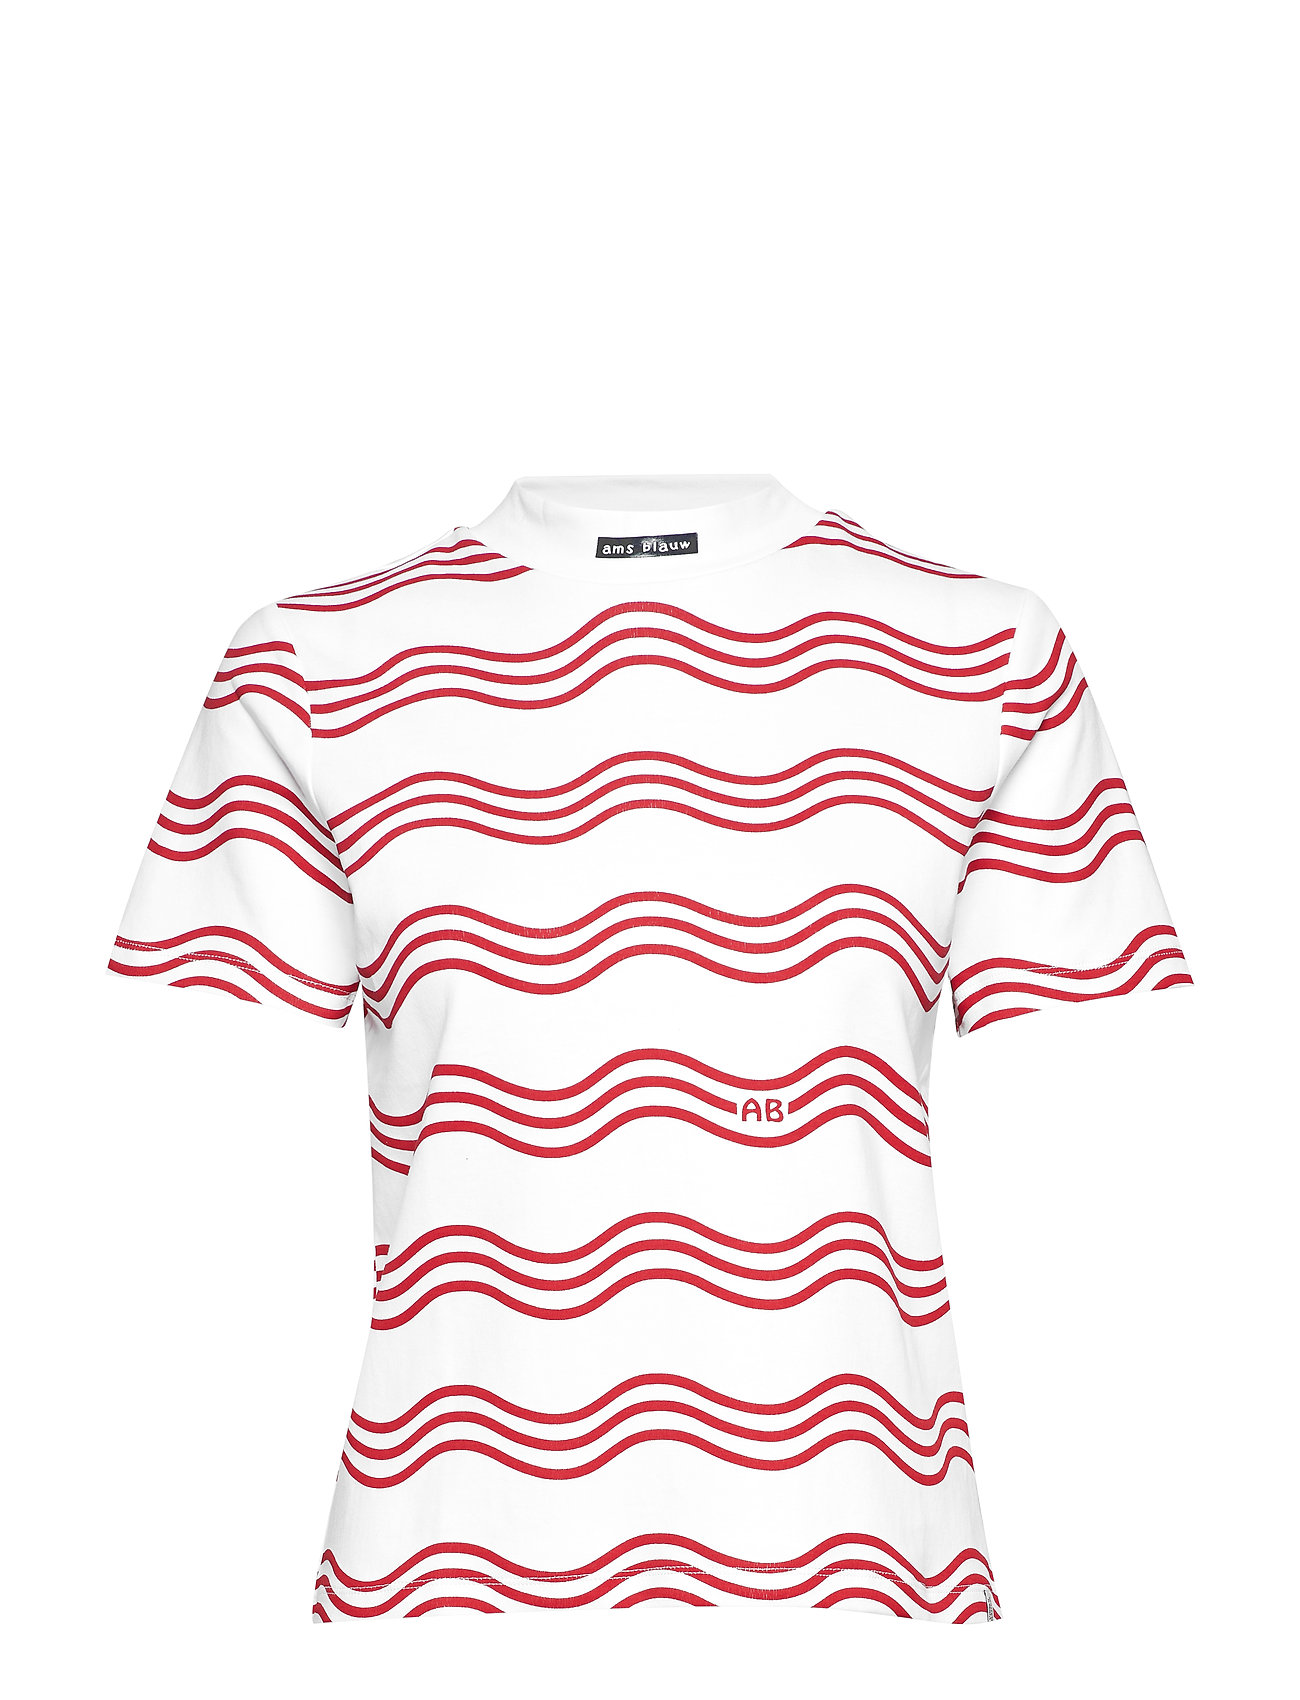 Scotch & Soda Clean tee with a high neck - COMBO A